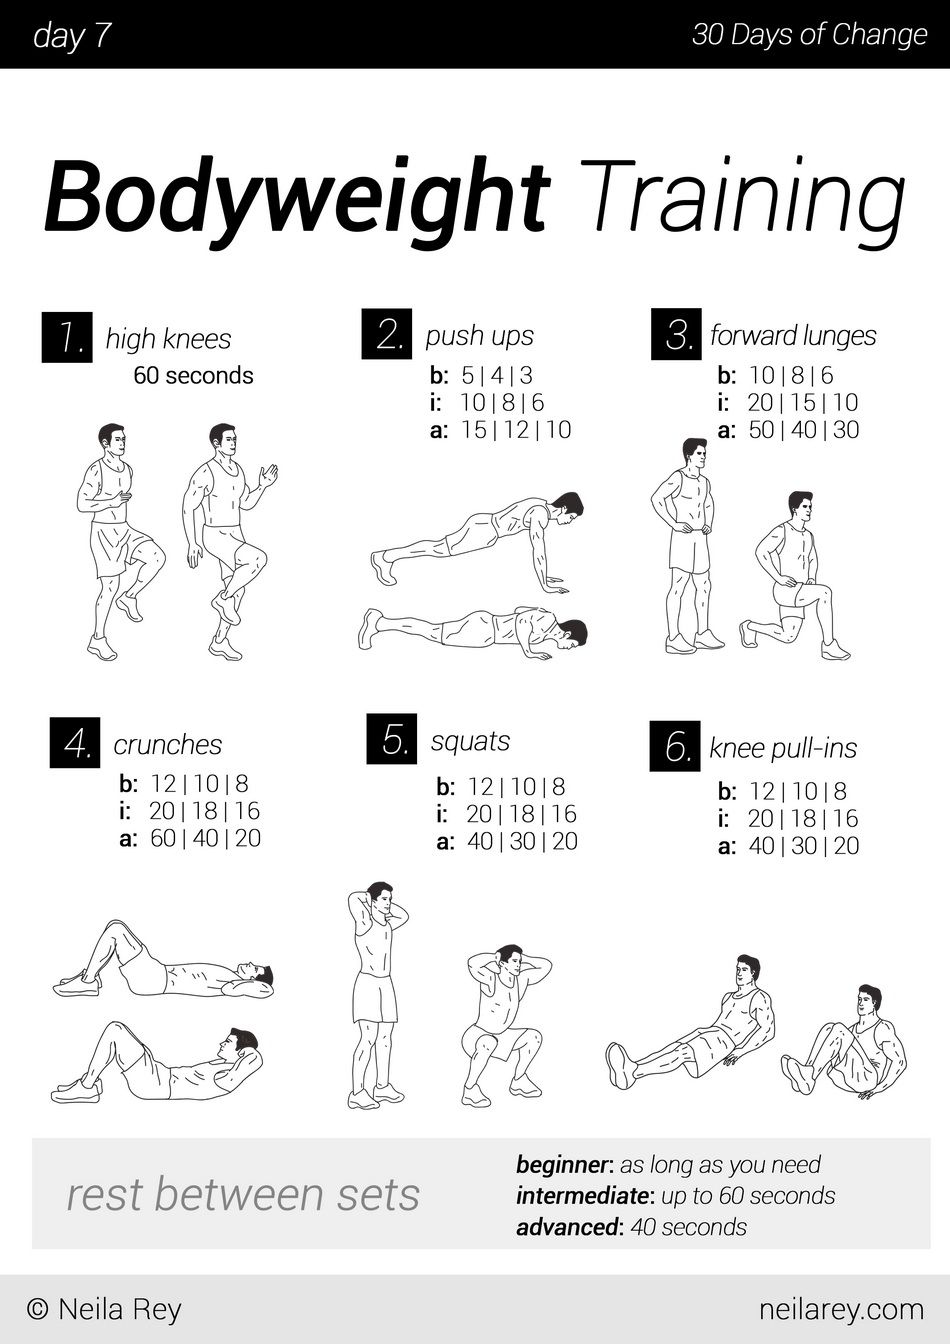 Pin on Exercise and Health